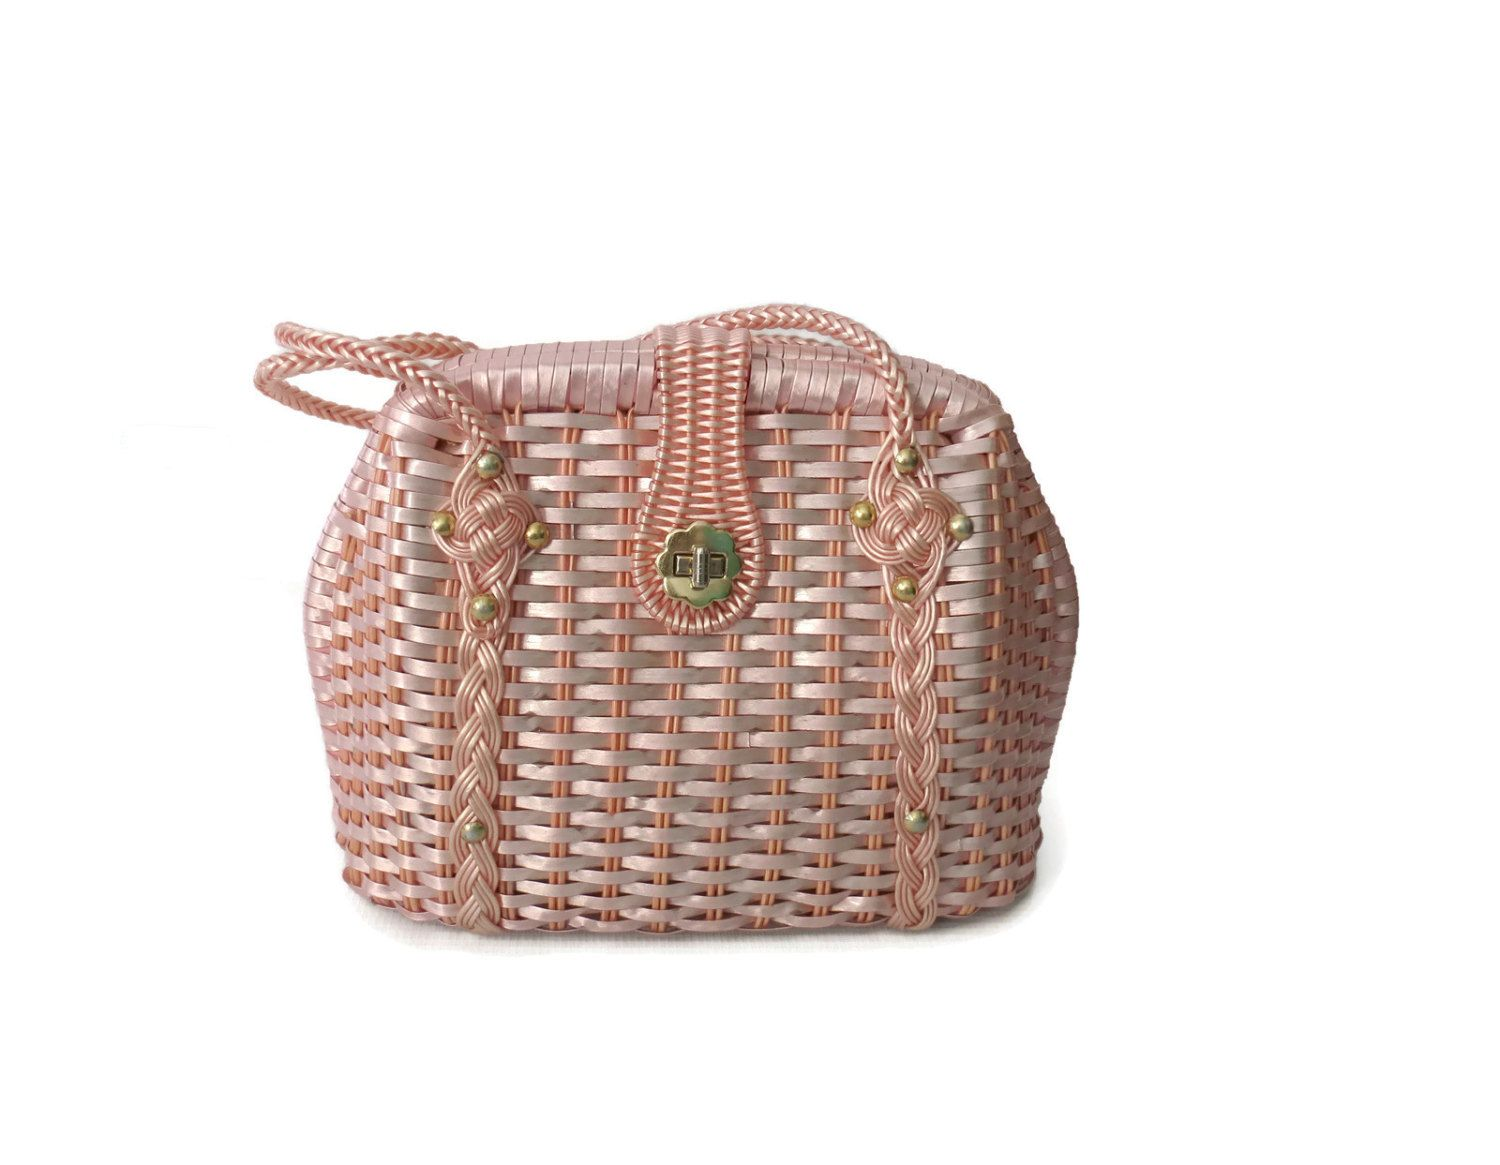 Wicker Purse Pink Woven Handbag Plastic Braided Bag 60s 1960s Ice Pink Metallic 1960s Mid Century Pastel Vegan by GoodLuxeVintage on Etsy